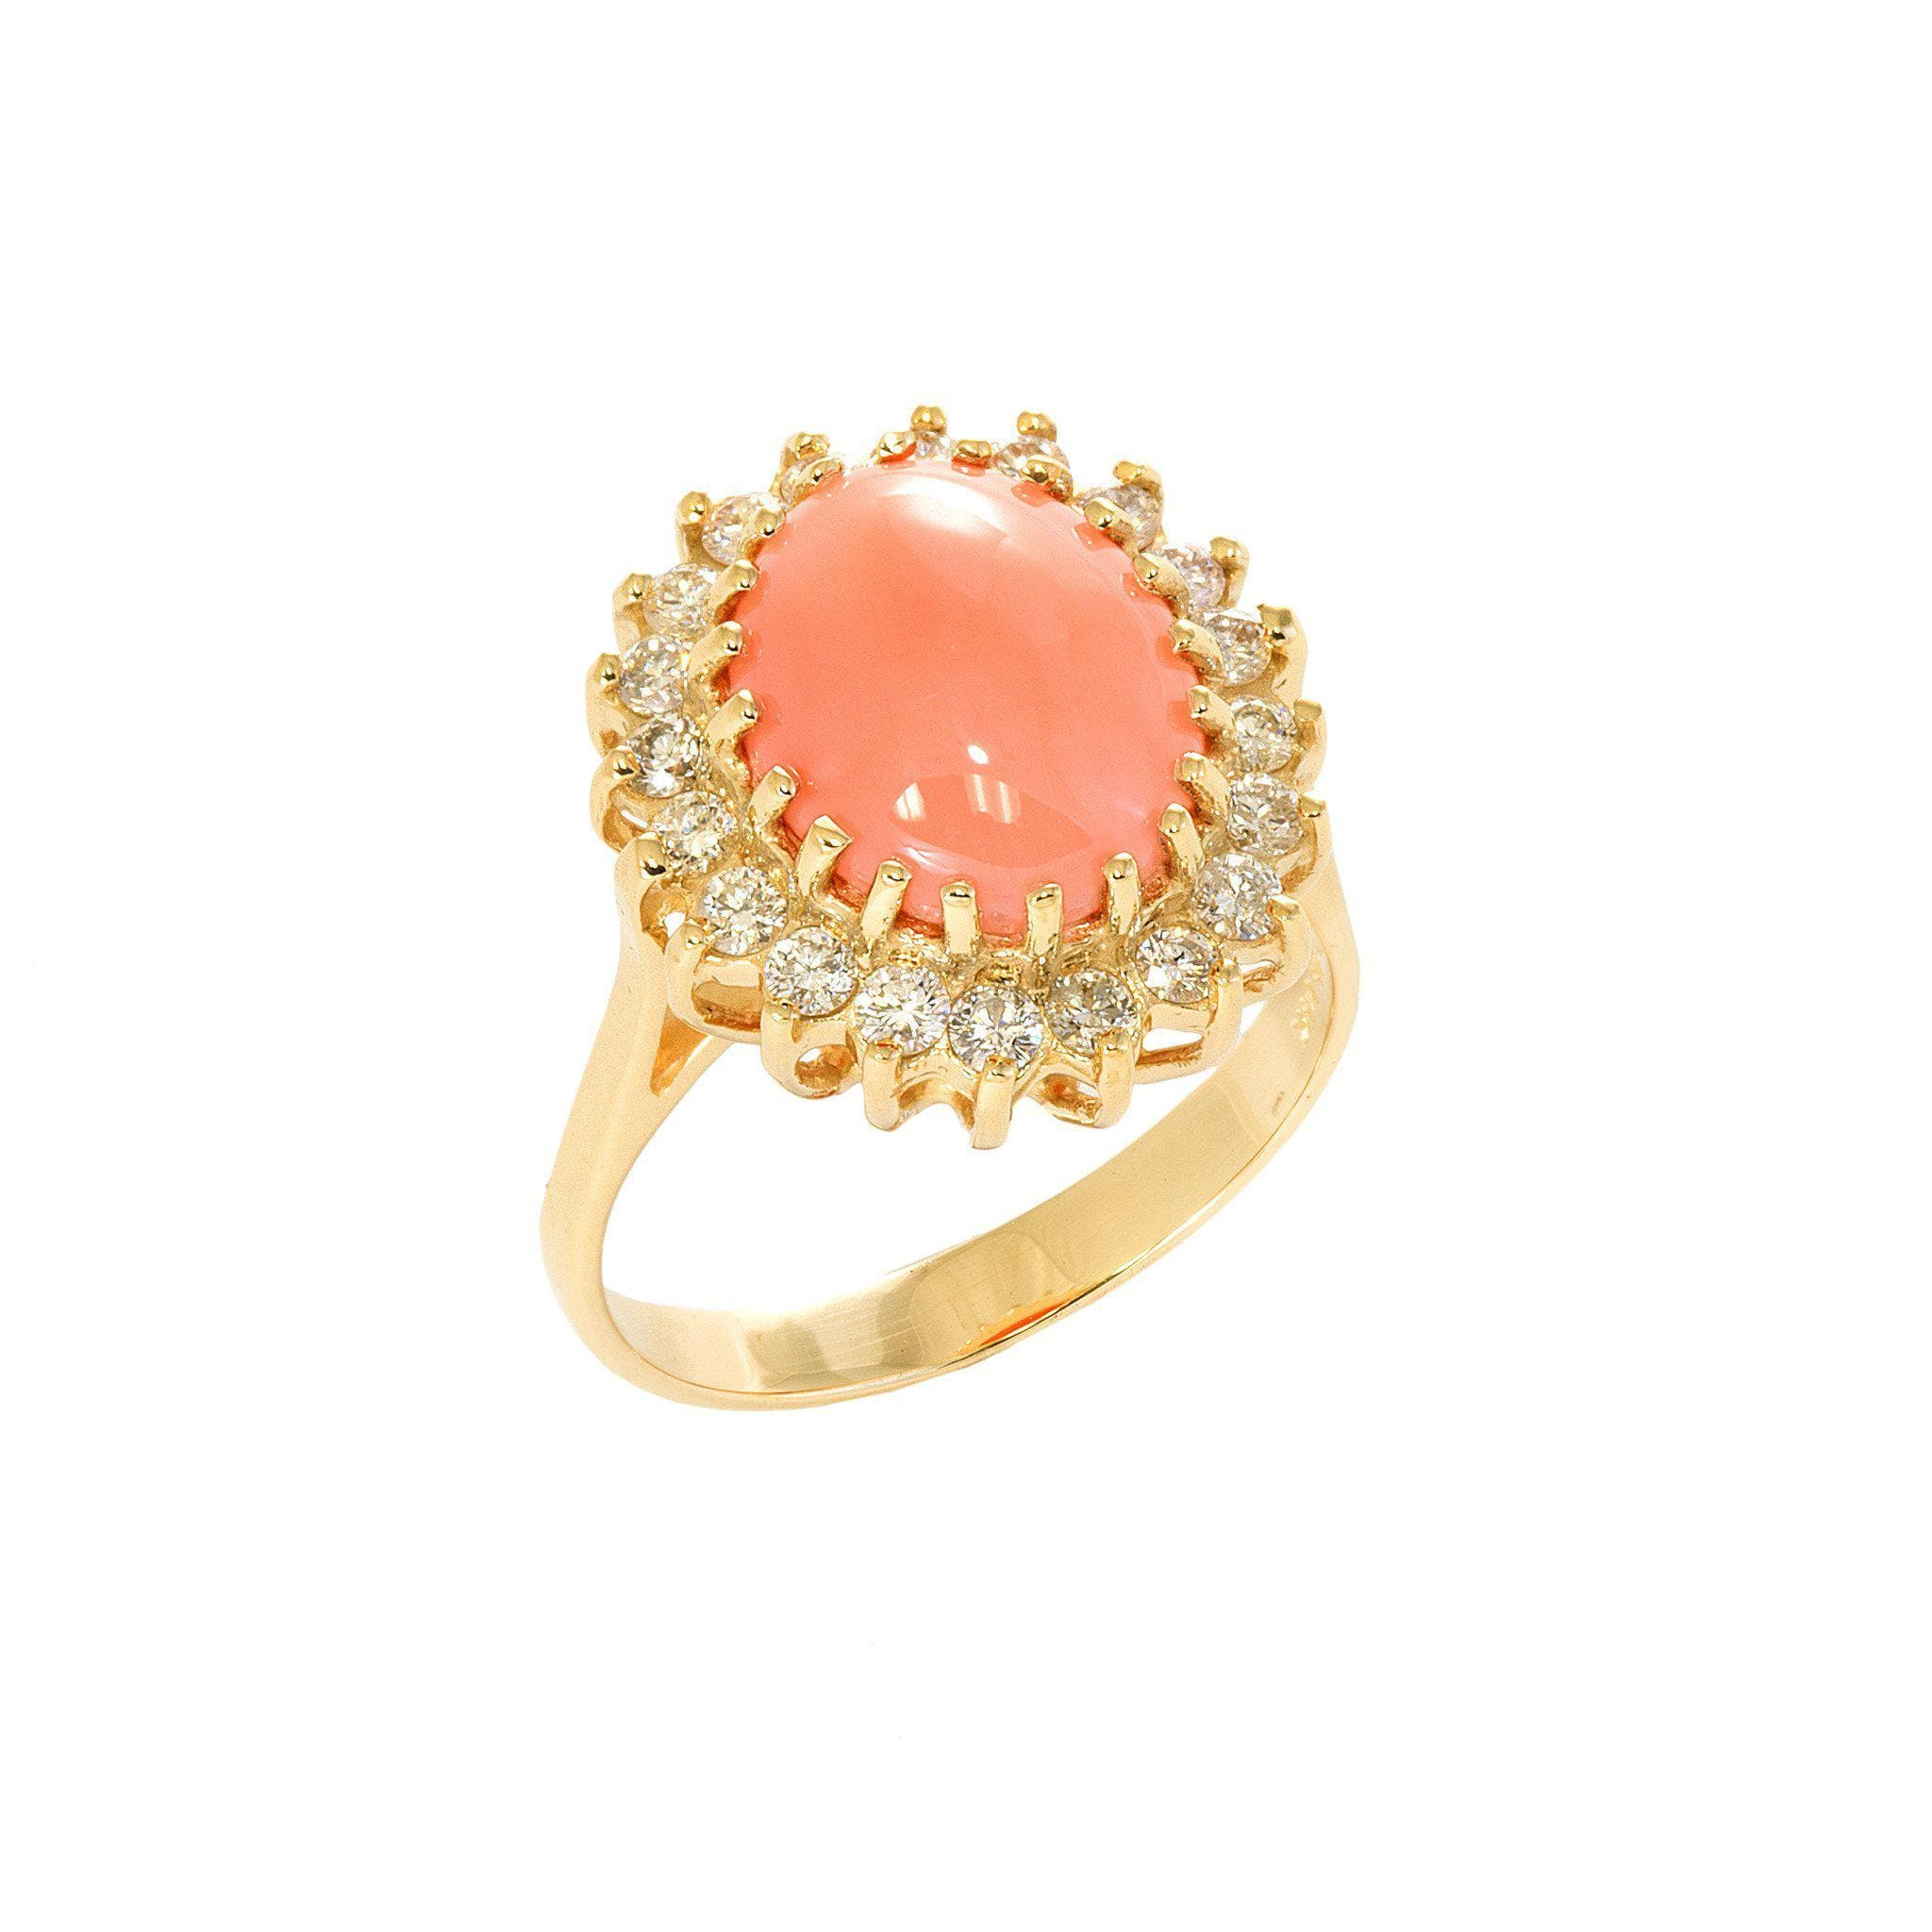 nouveau coral circa cameo a jewels products bijoux rings rggst lovely art ring